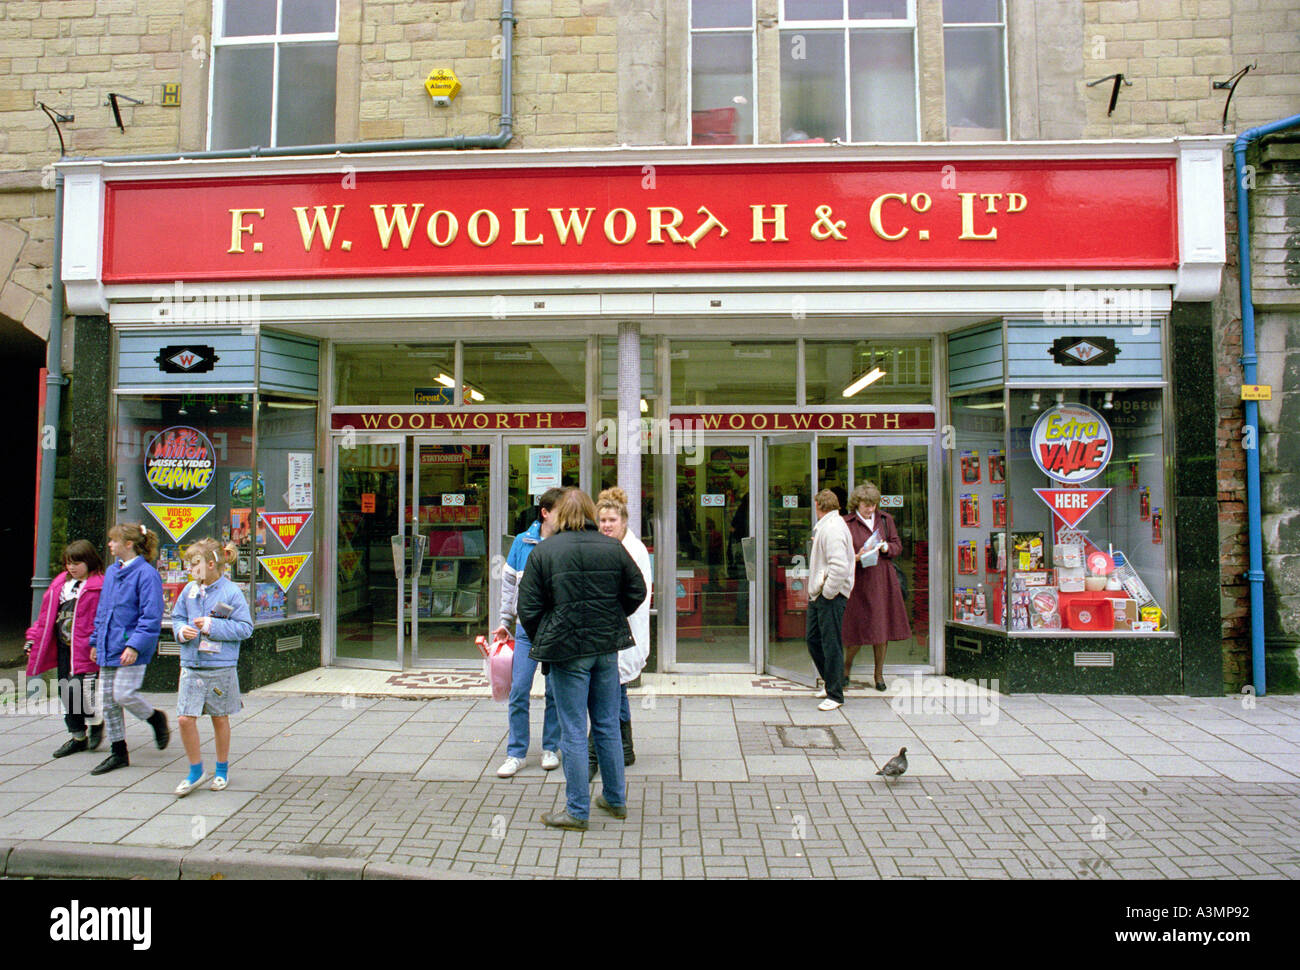 England Derbyshire Buxton shops F W Woolworth store before modernisation Stock Photo